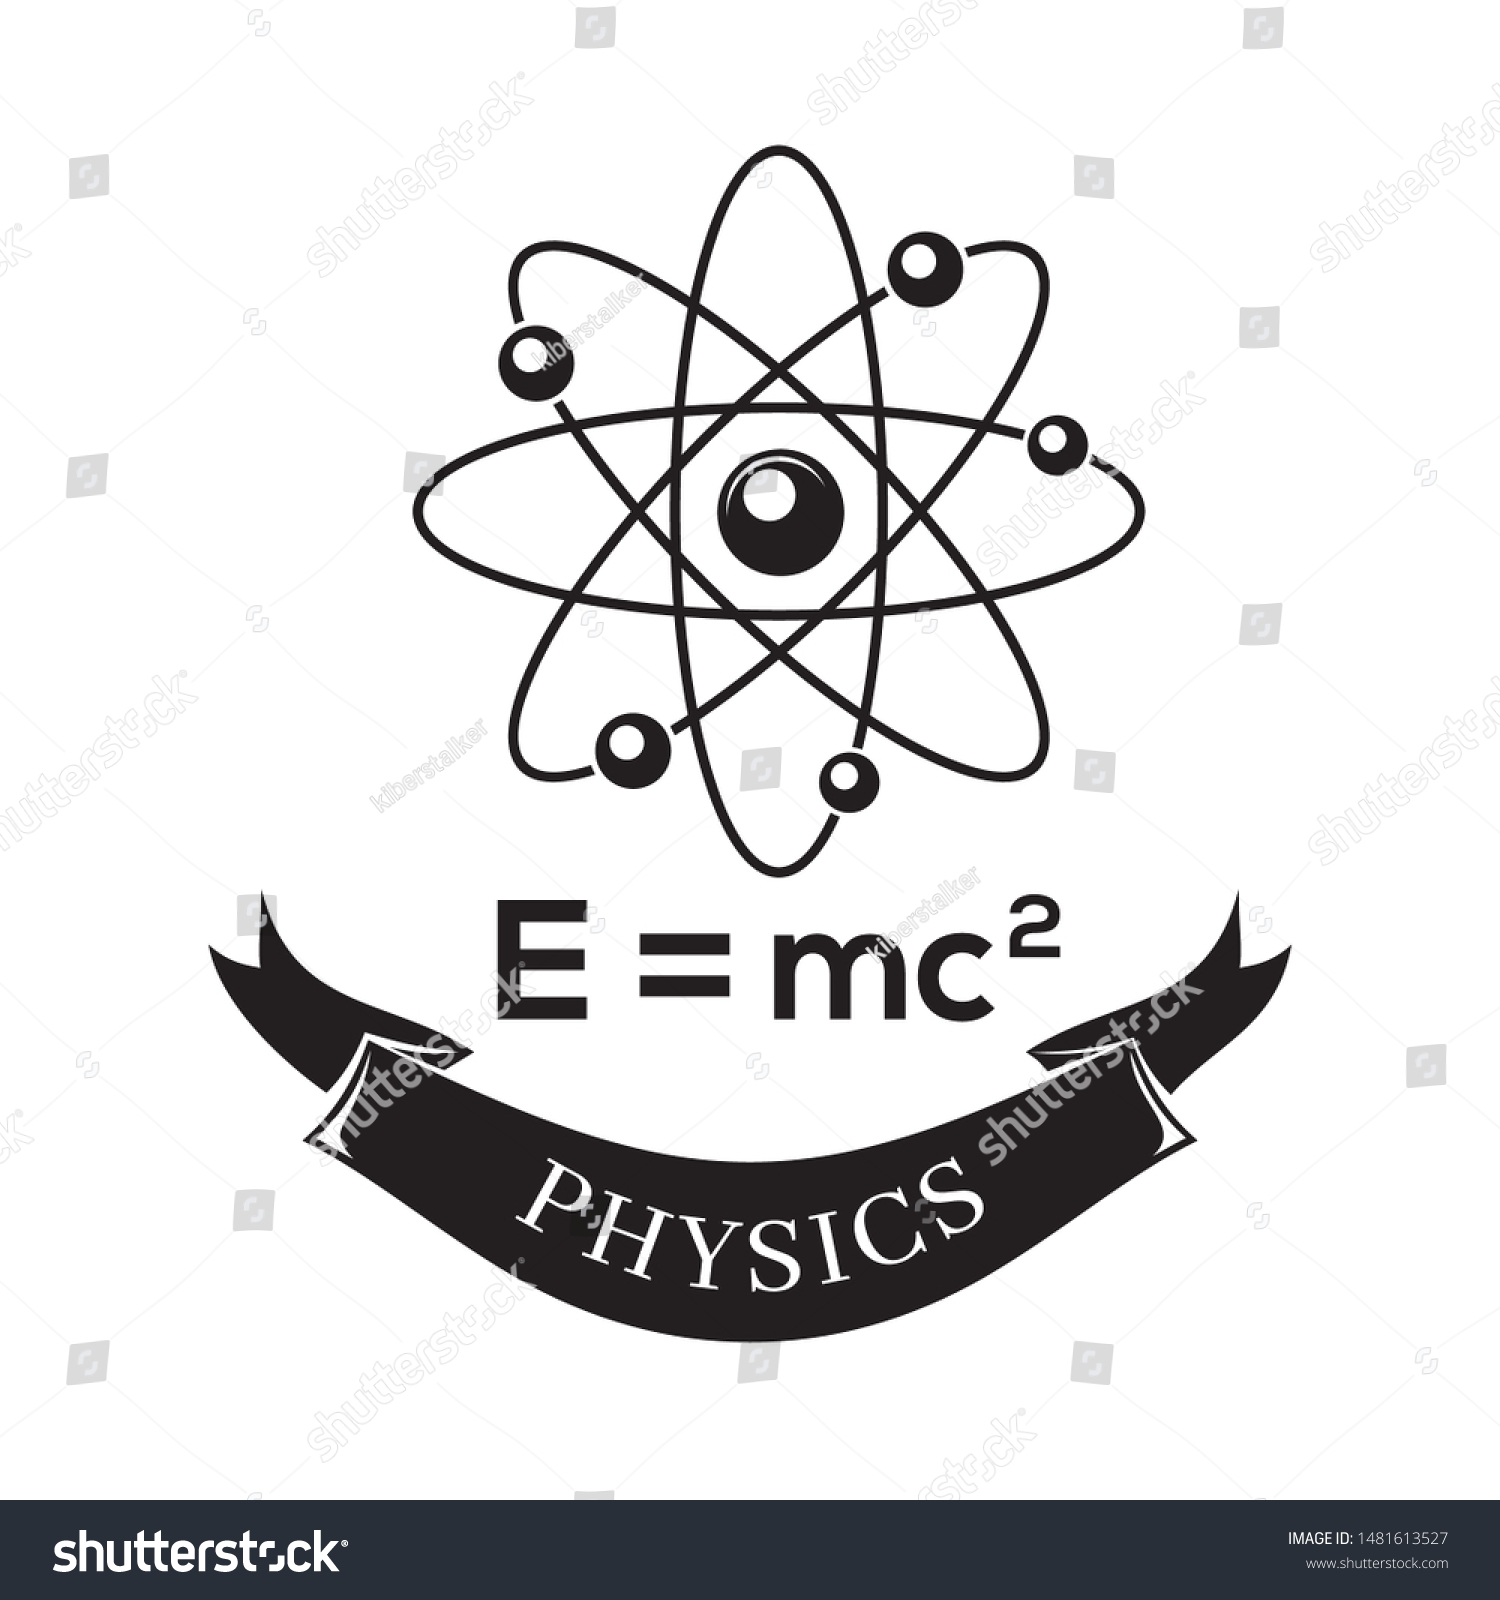 black white vector icon science physics stock vector royalty free 1481613527 https www shutterstock com image vector black white vector icon science physics 1481613527